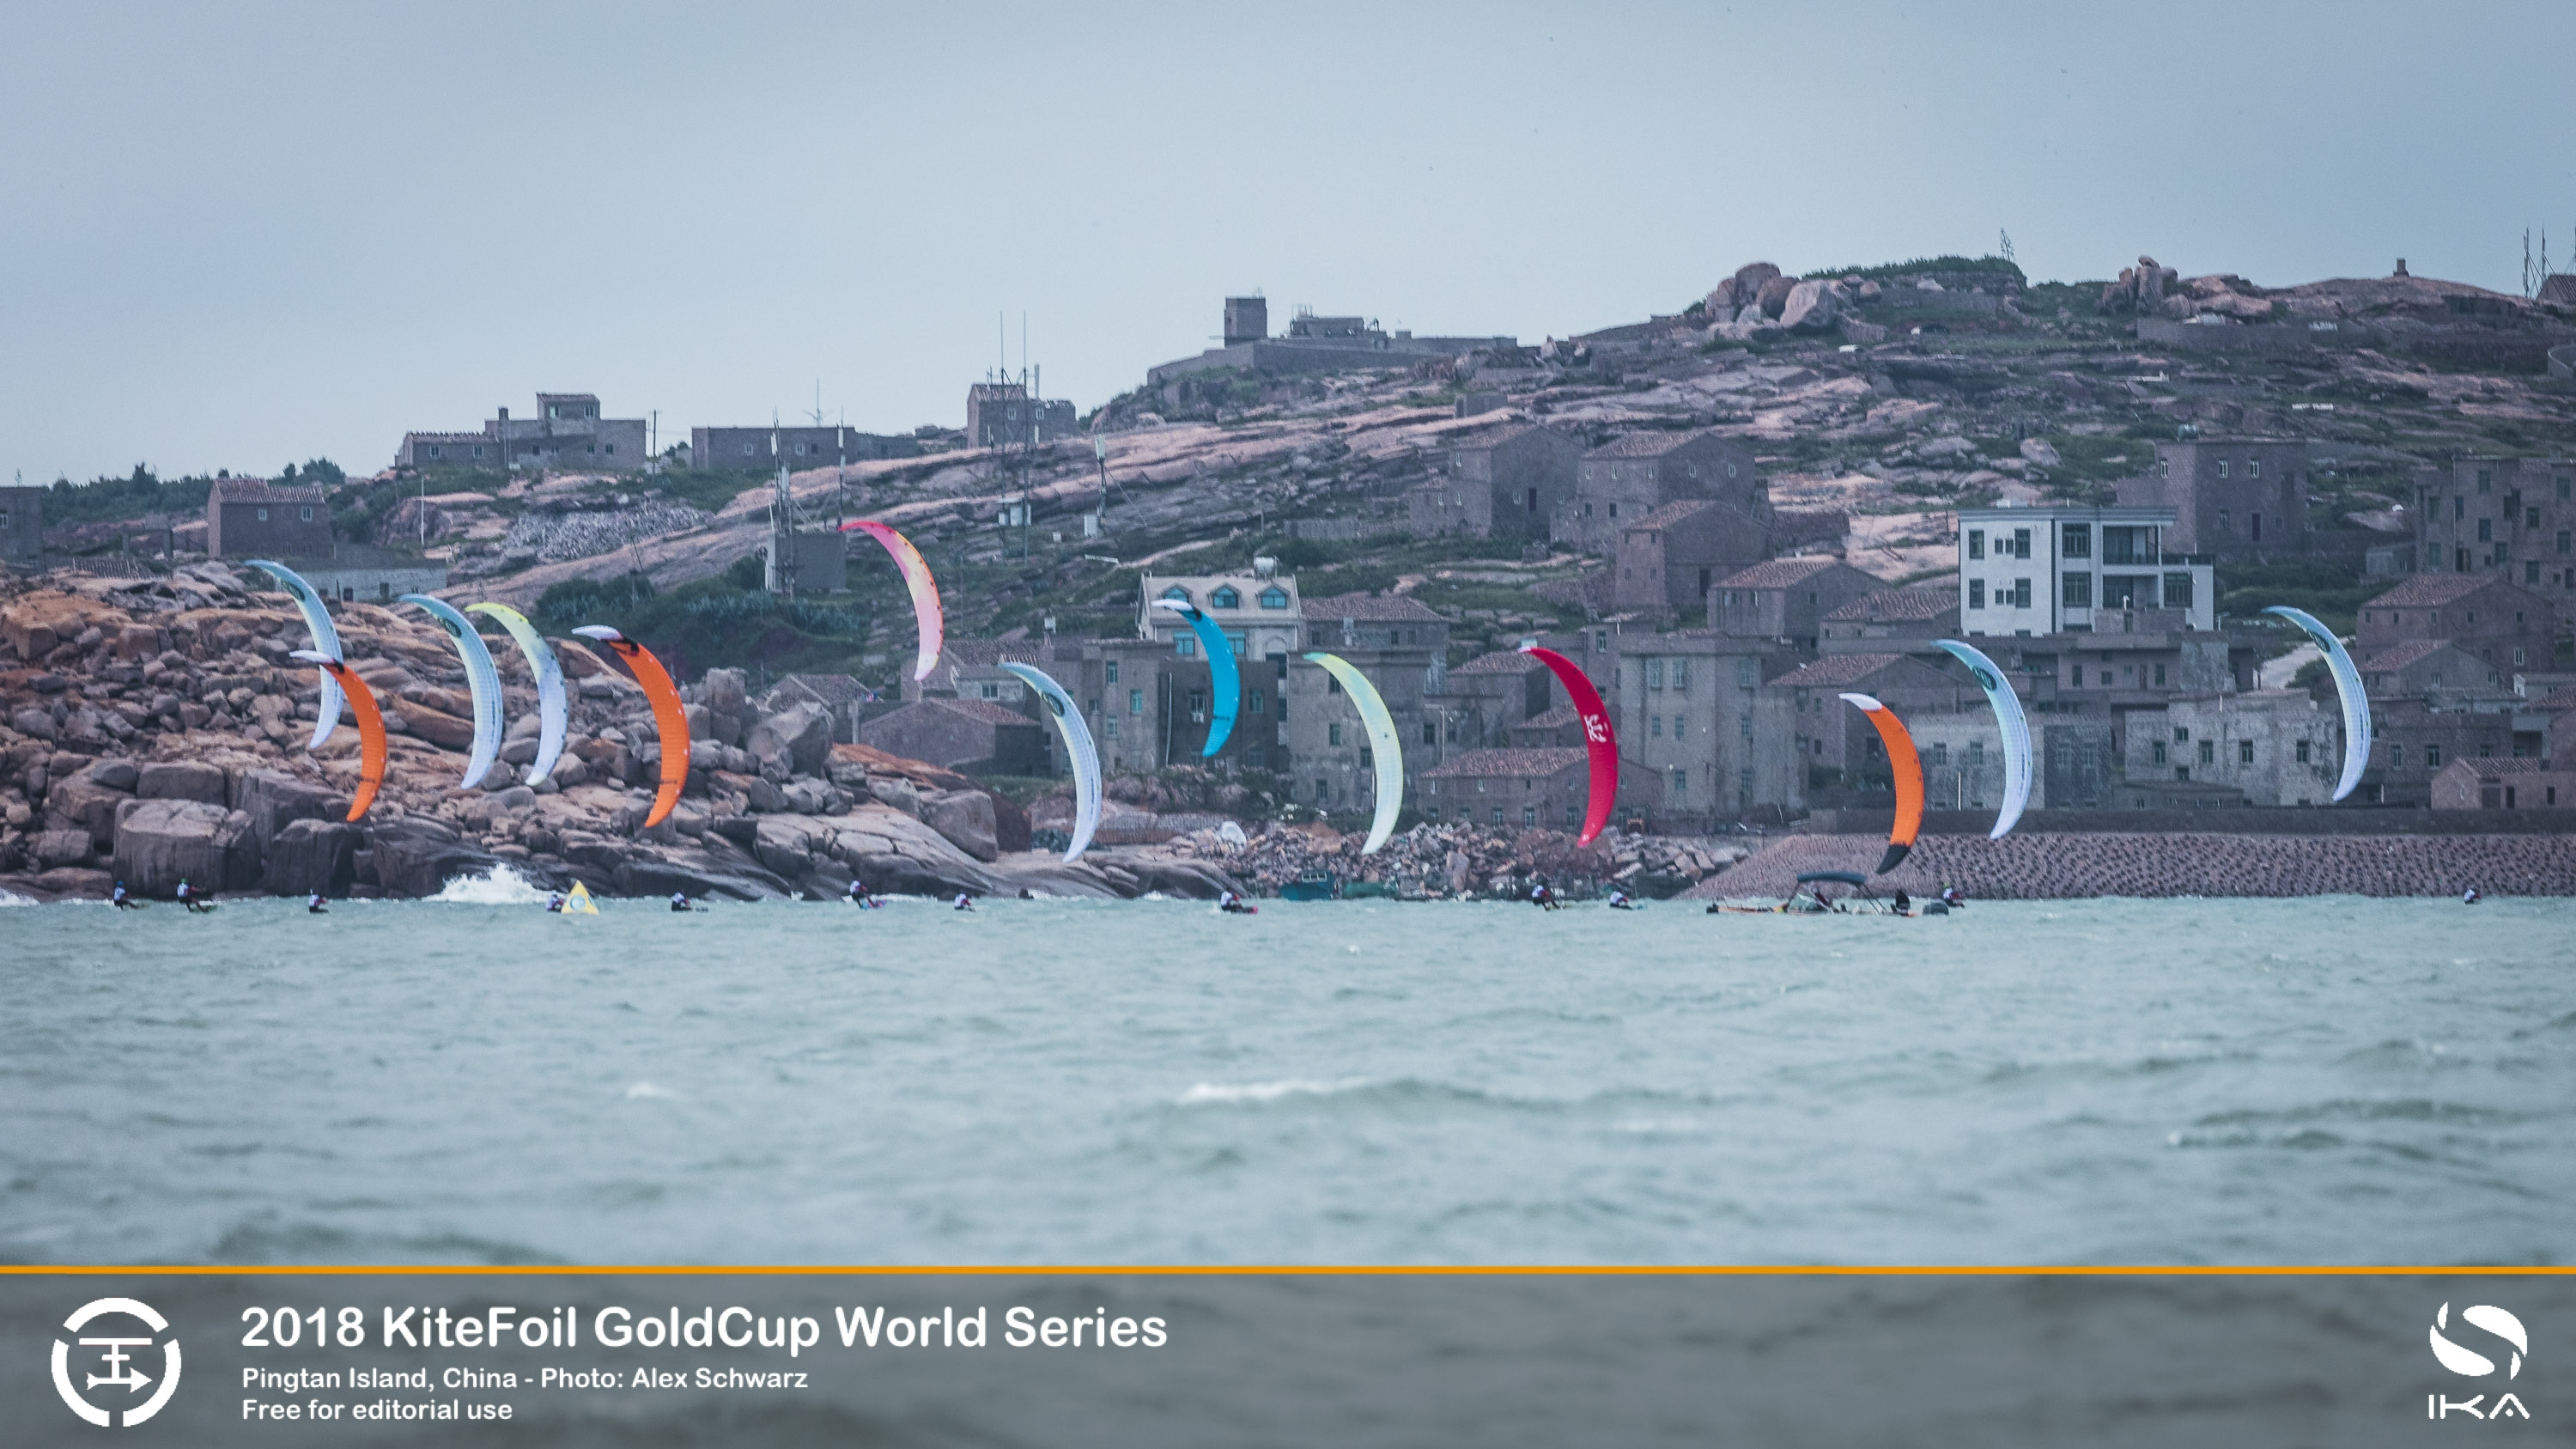 French Pair Mount Strong Challenge in Tough Conditions at China KiteFoil Tour Stop